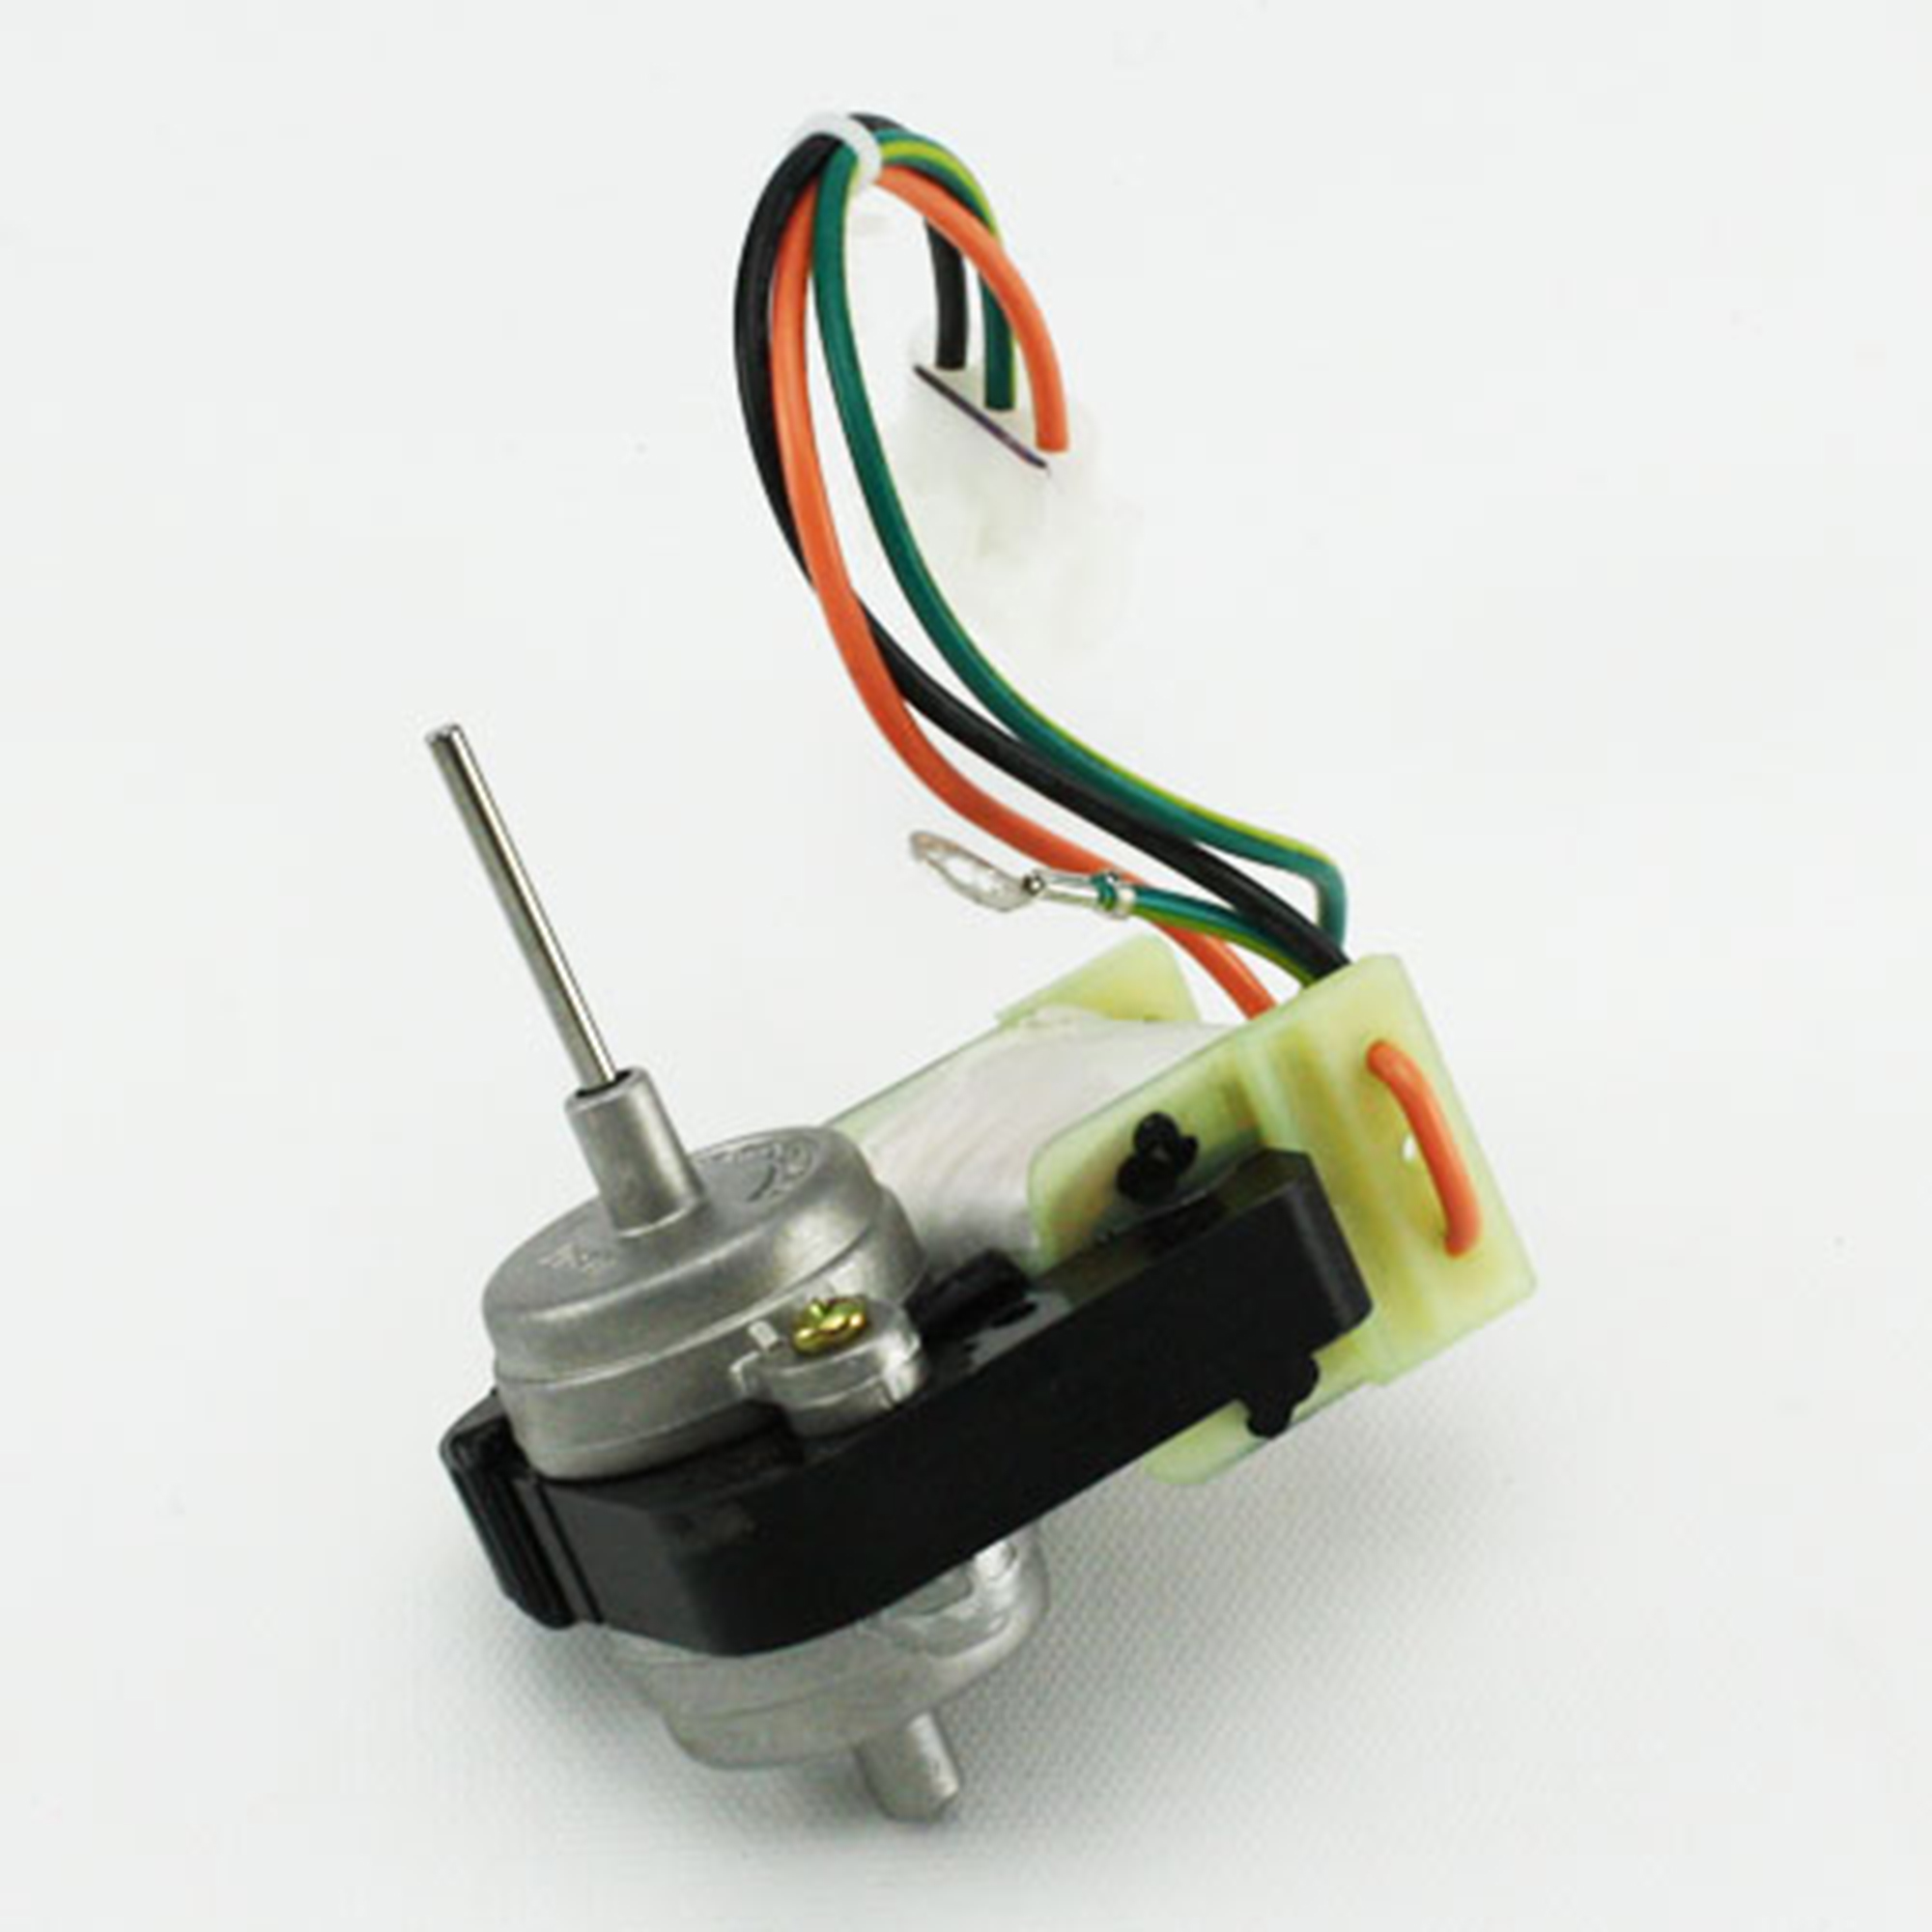 Wr60x10220 ge refrigerator condenser fan motor ebay for Ge refrigerator condenser fan motor not working